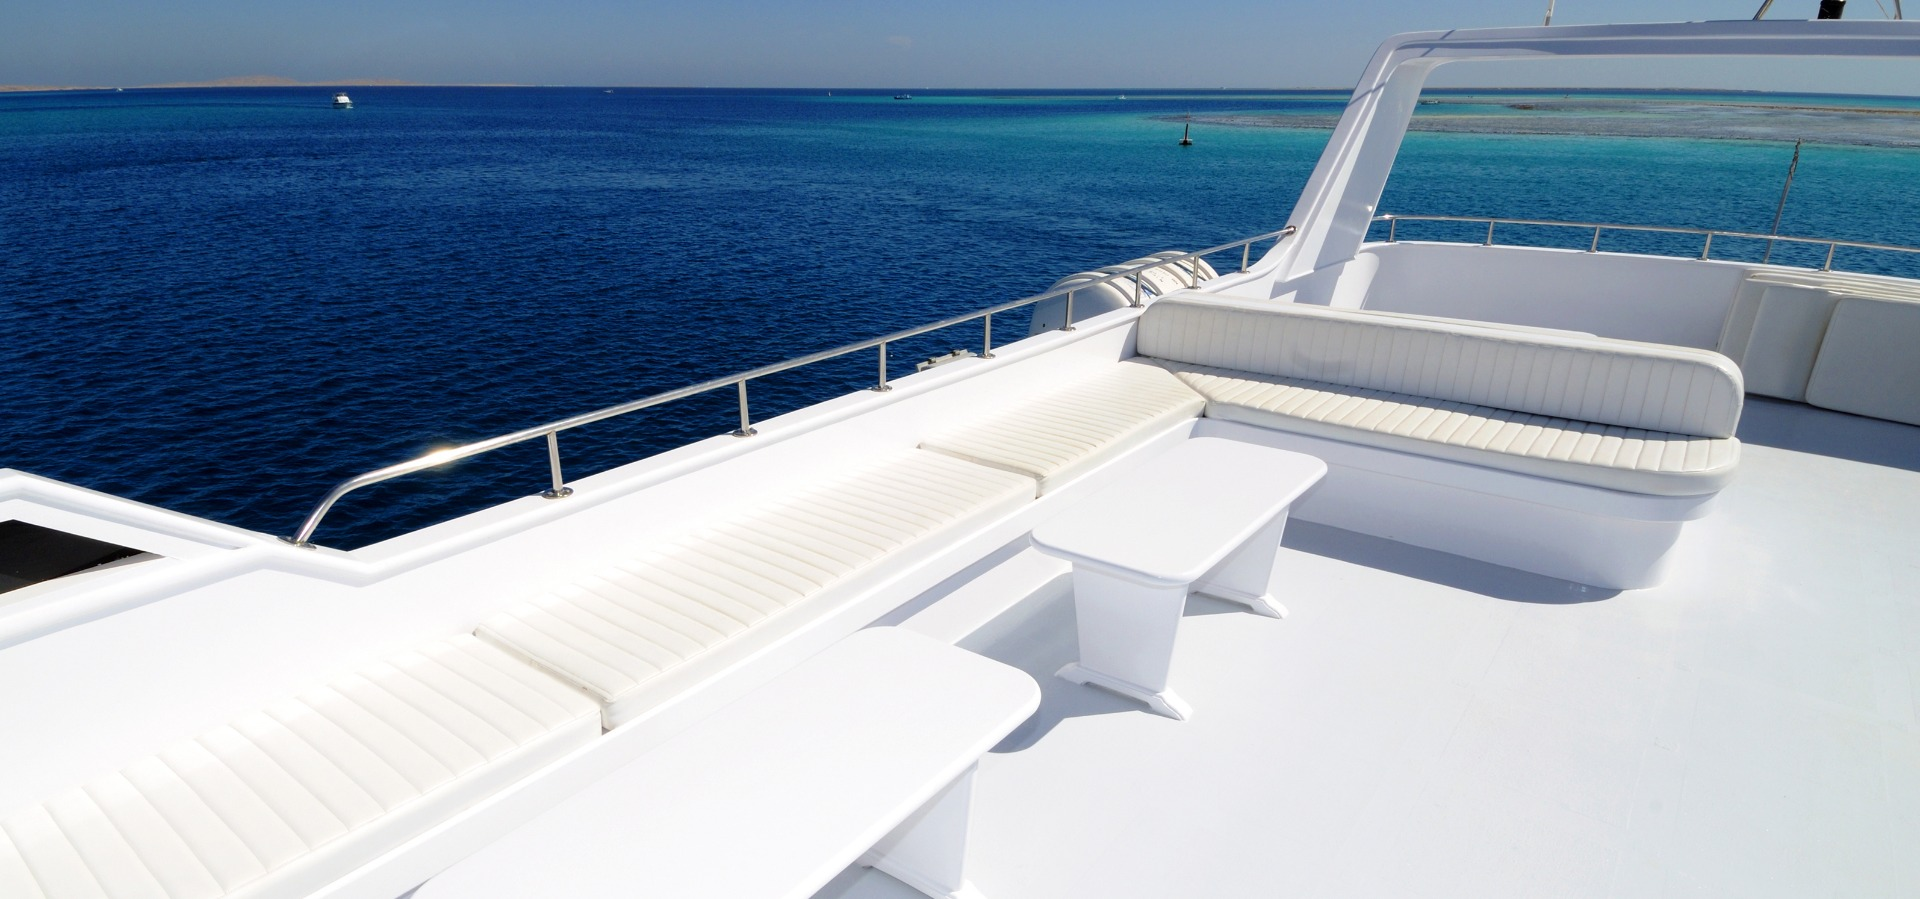 M/Y blue Melody sundeck, Red Sea, Egypt